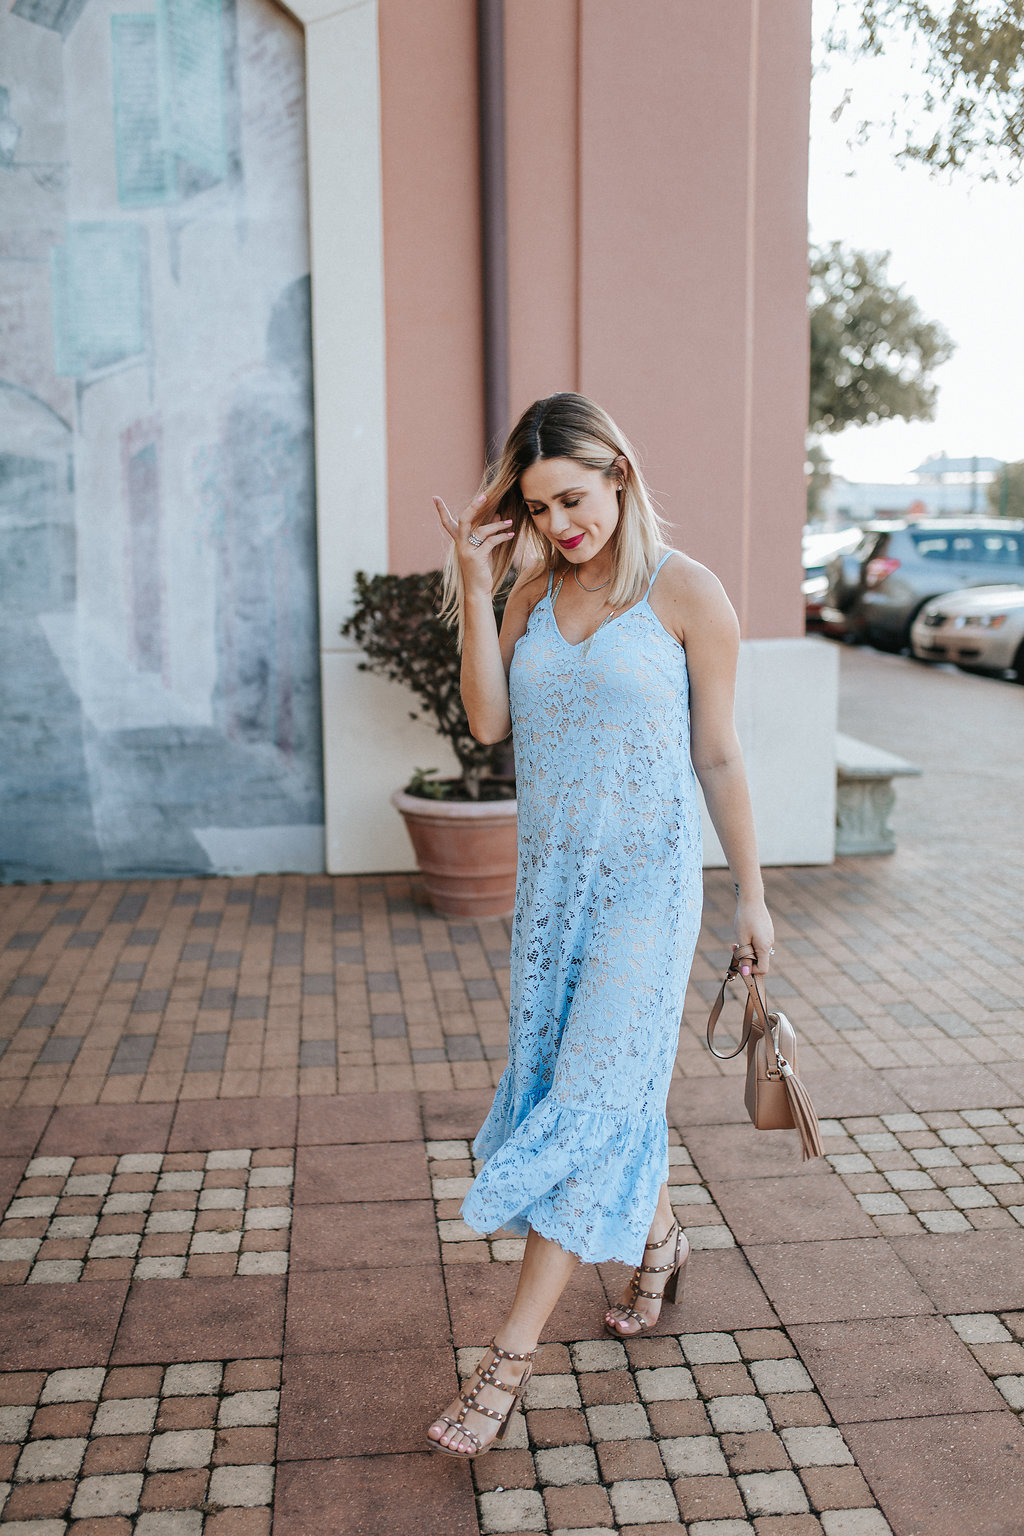 Blue lace dress | Maxi lace dress | Summer Dress outfit | Summer outfit ideas | Uptown with Elly Brown - My Life Story, High School Dropout by Houston lifestyle blogger Uptown with Elly Brown